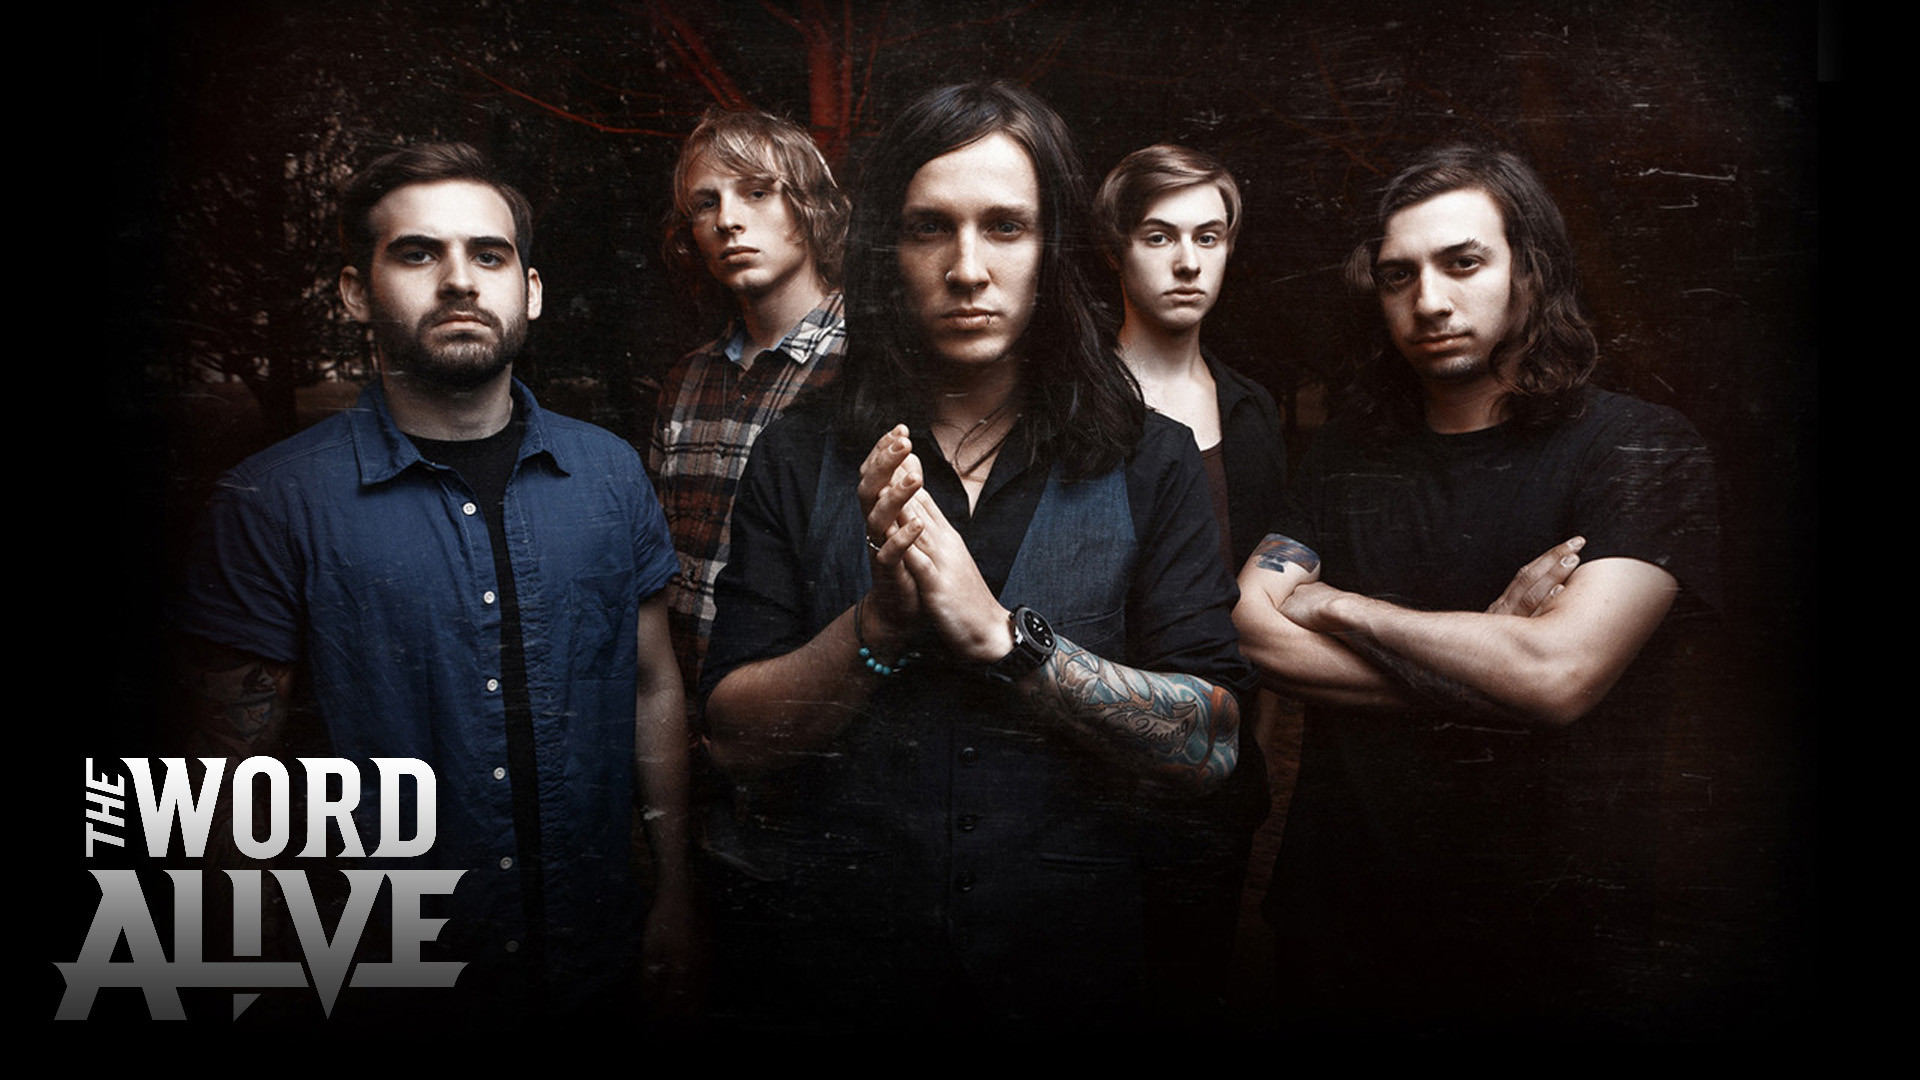 Altwall: The Word Alive wallpaper ( ) Ghost Band Wallpaper